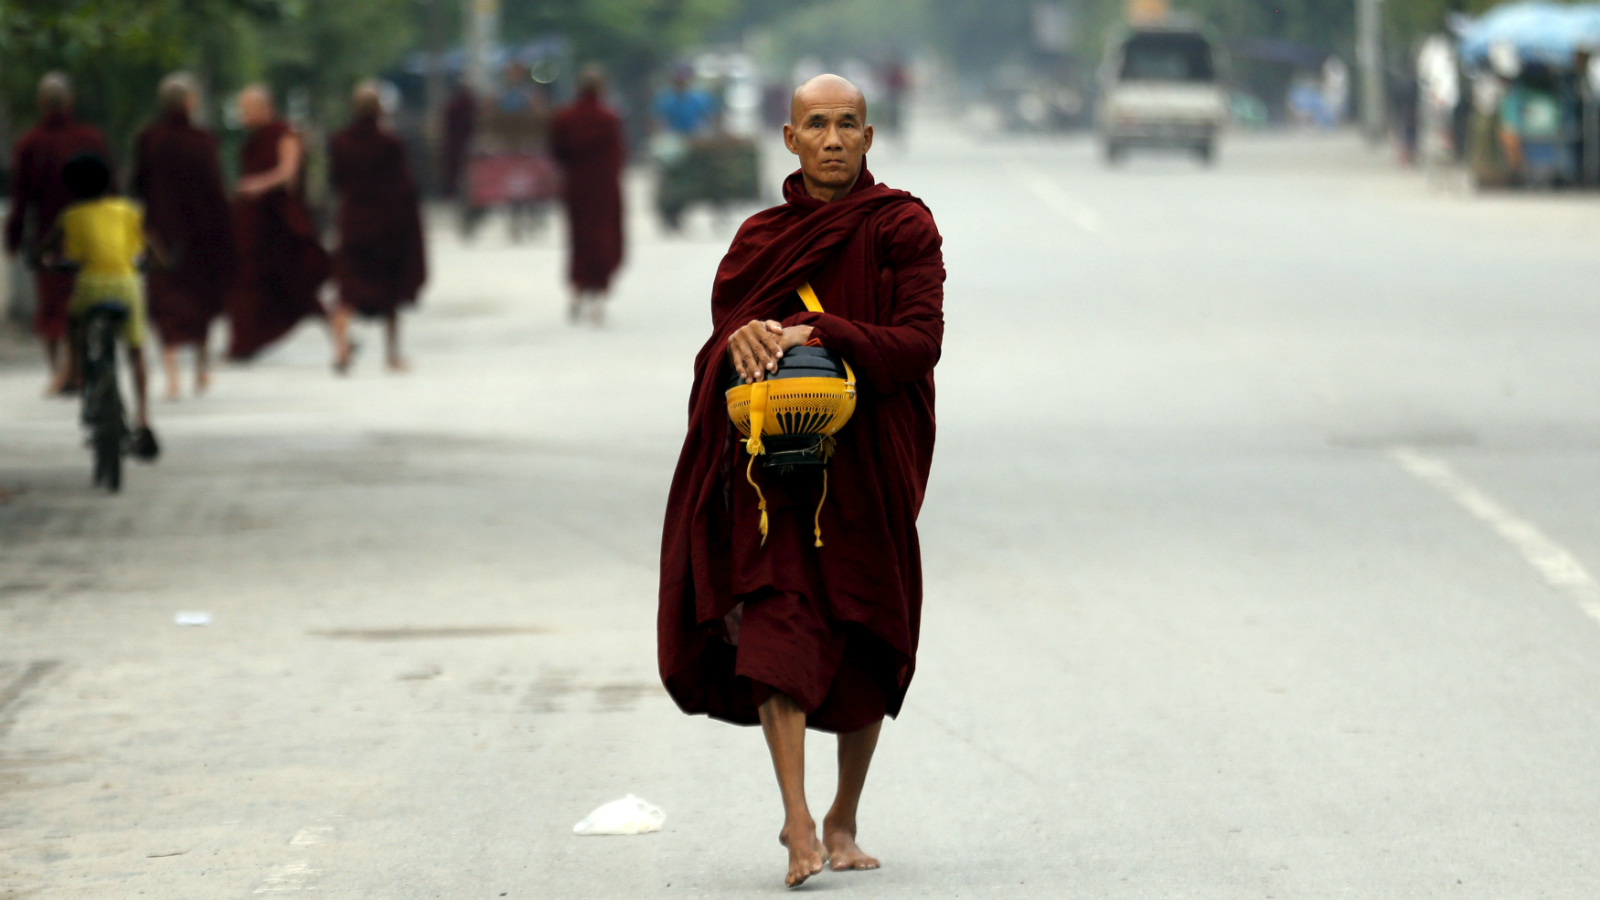 Desire sexual women for monks